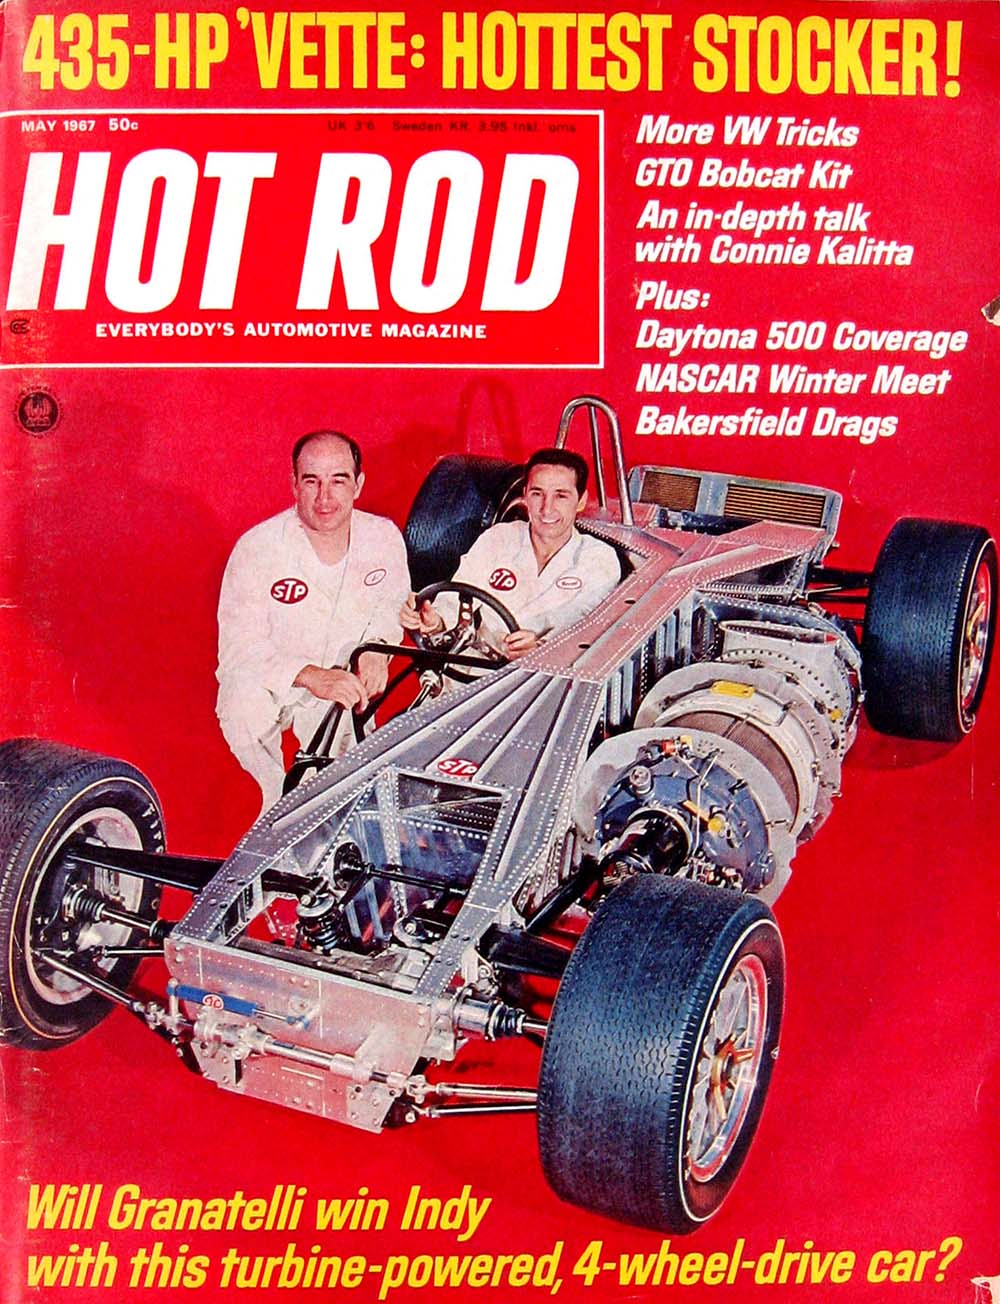 HOT ROD was definitely interested in the turbine cars, putting Granatelli on the cover in both 1967 and 1968.